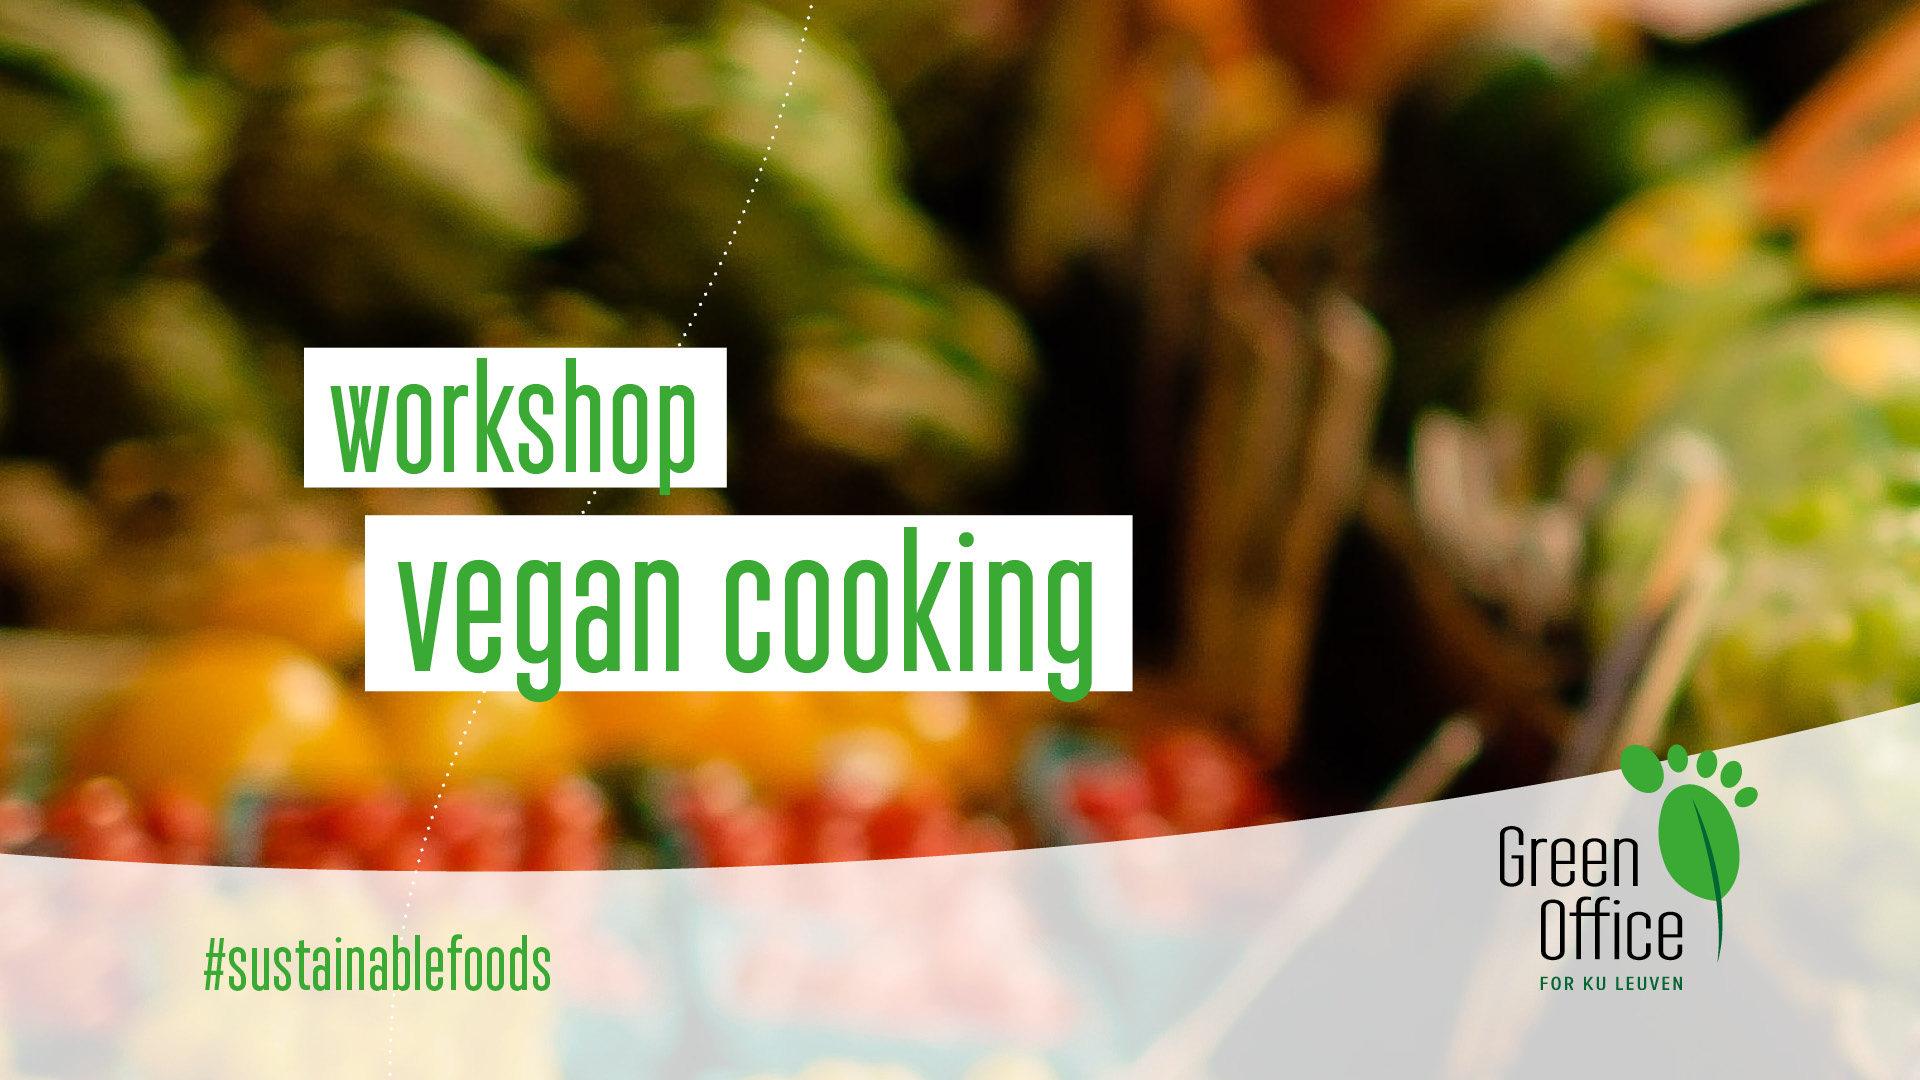 Get your ticket for the vegan cooking workshop